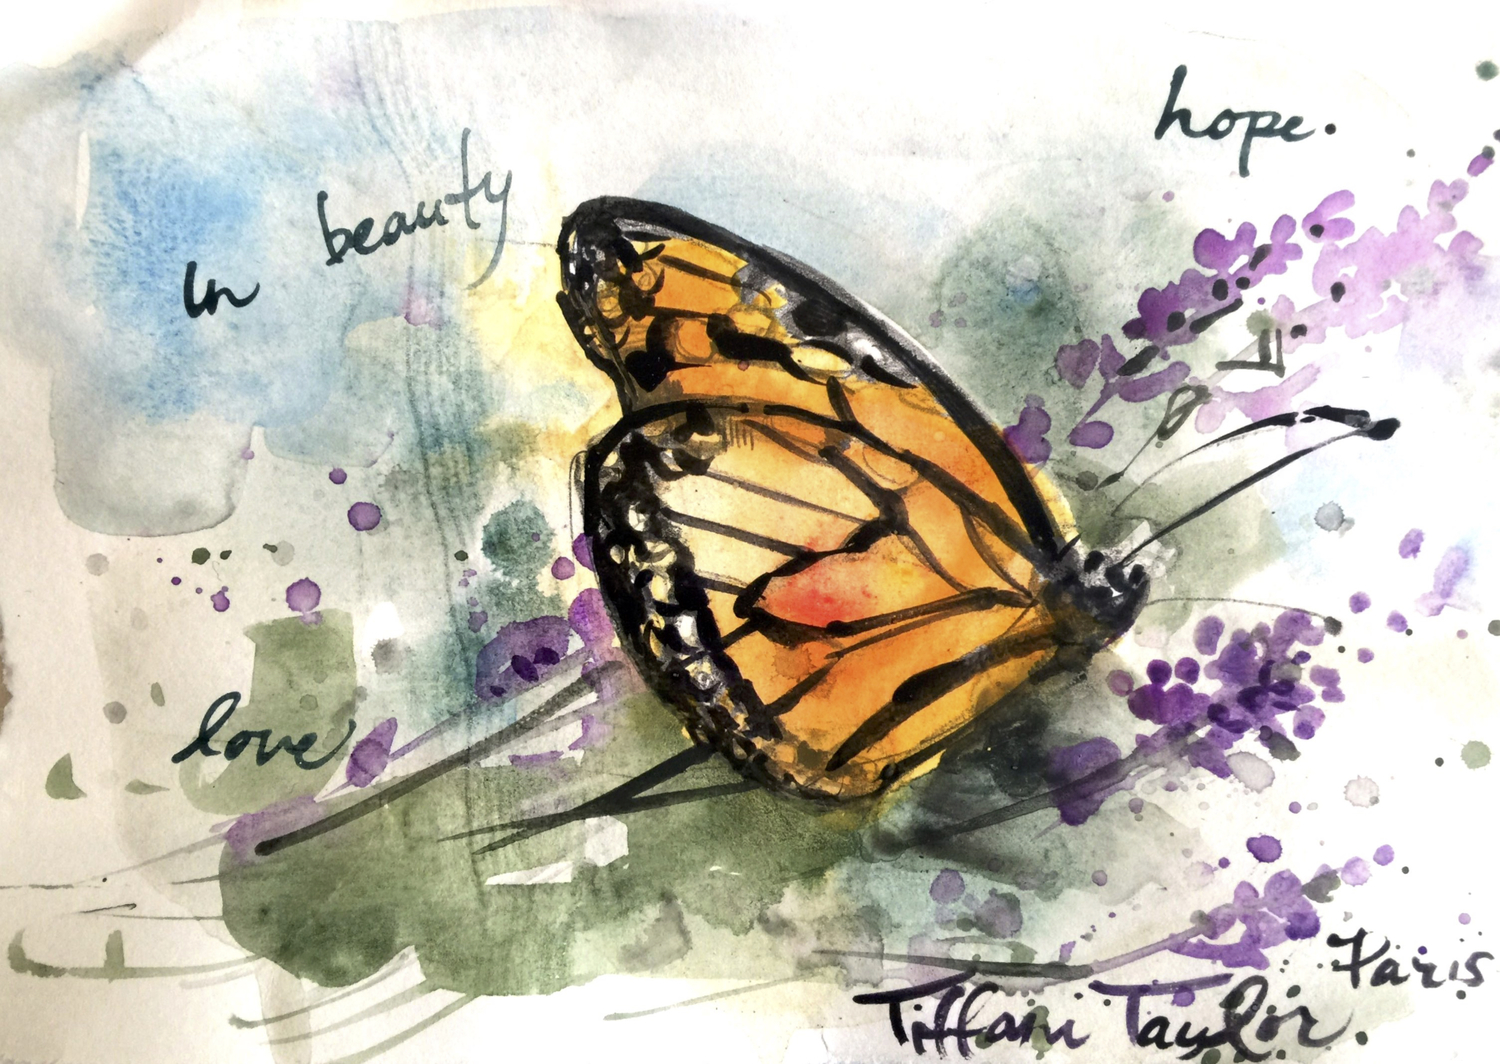 In Beauty: Love, Hope...